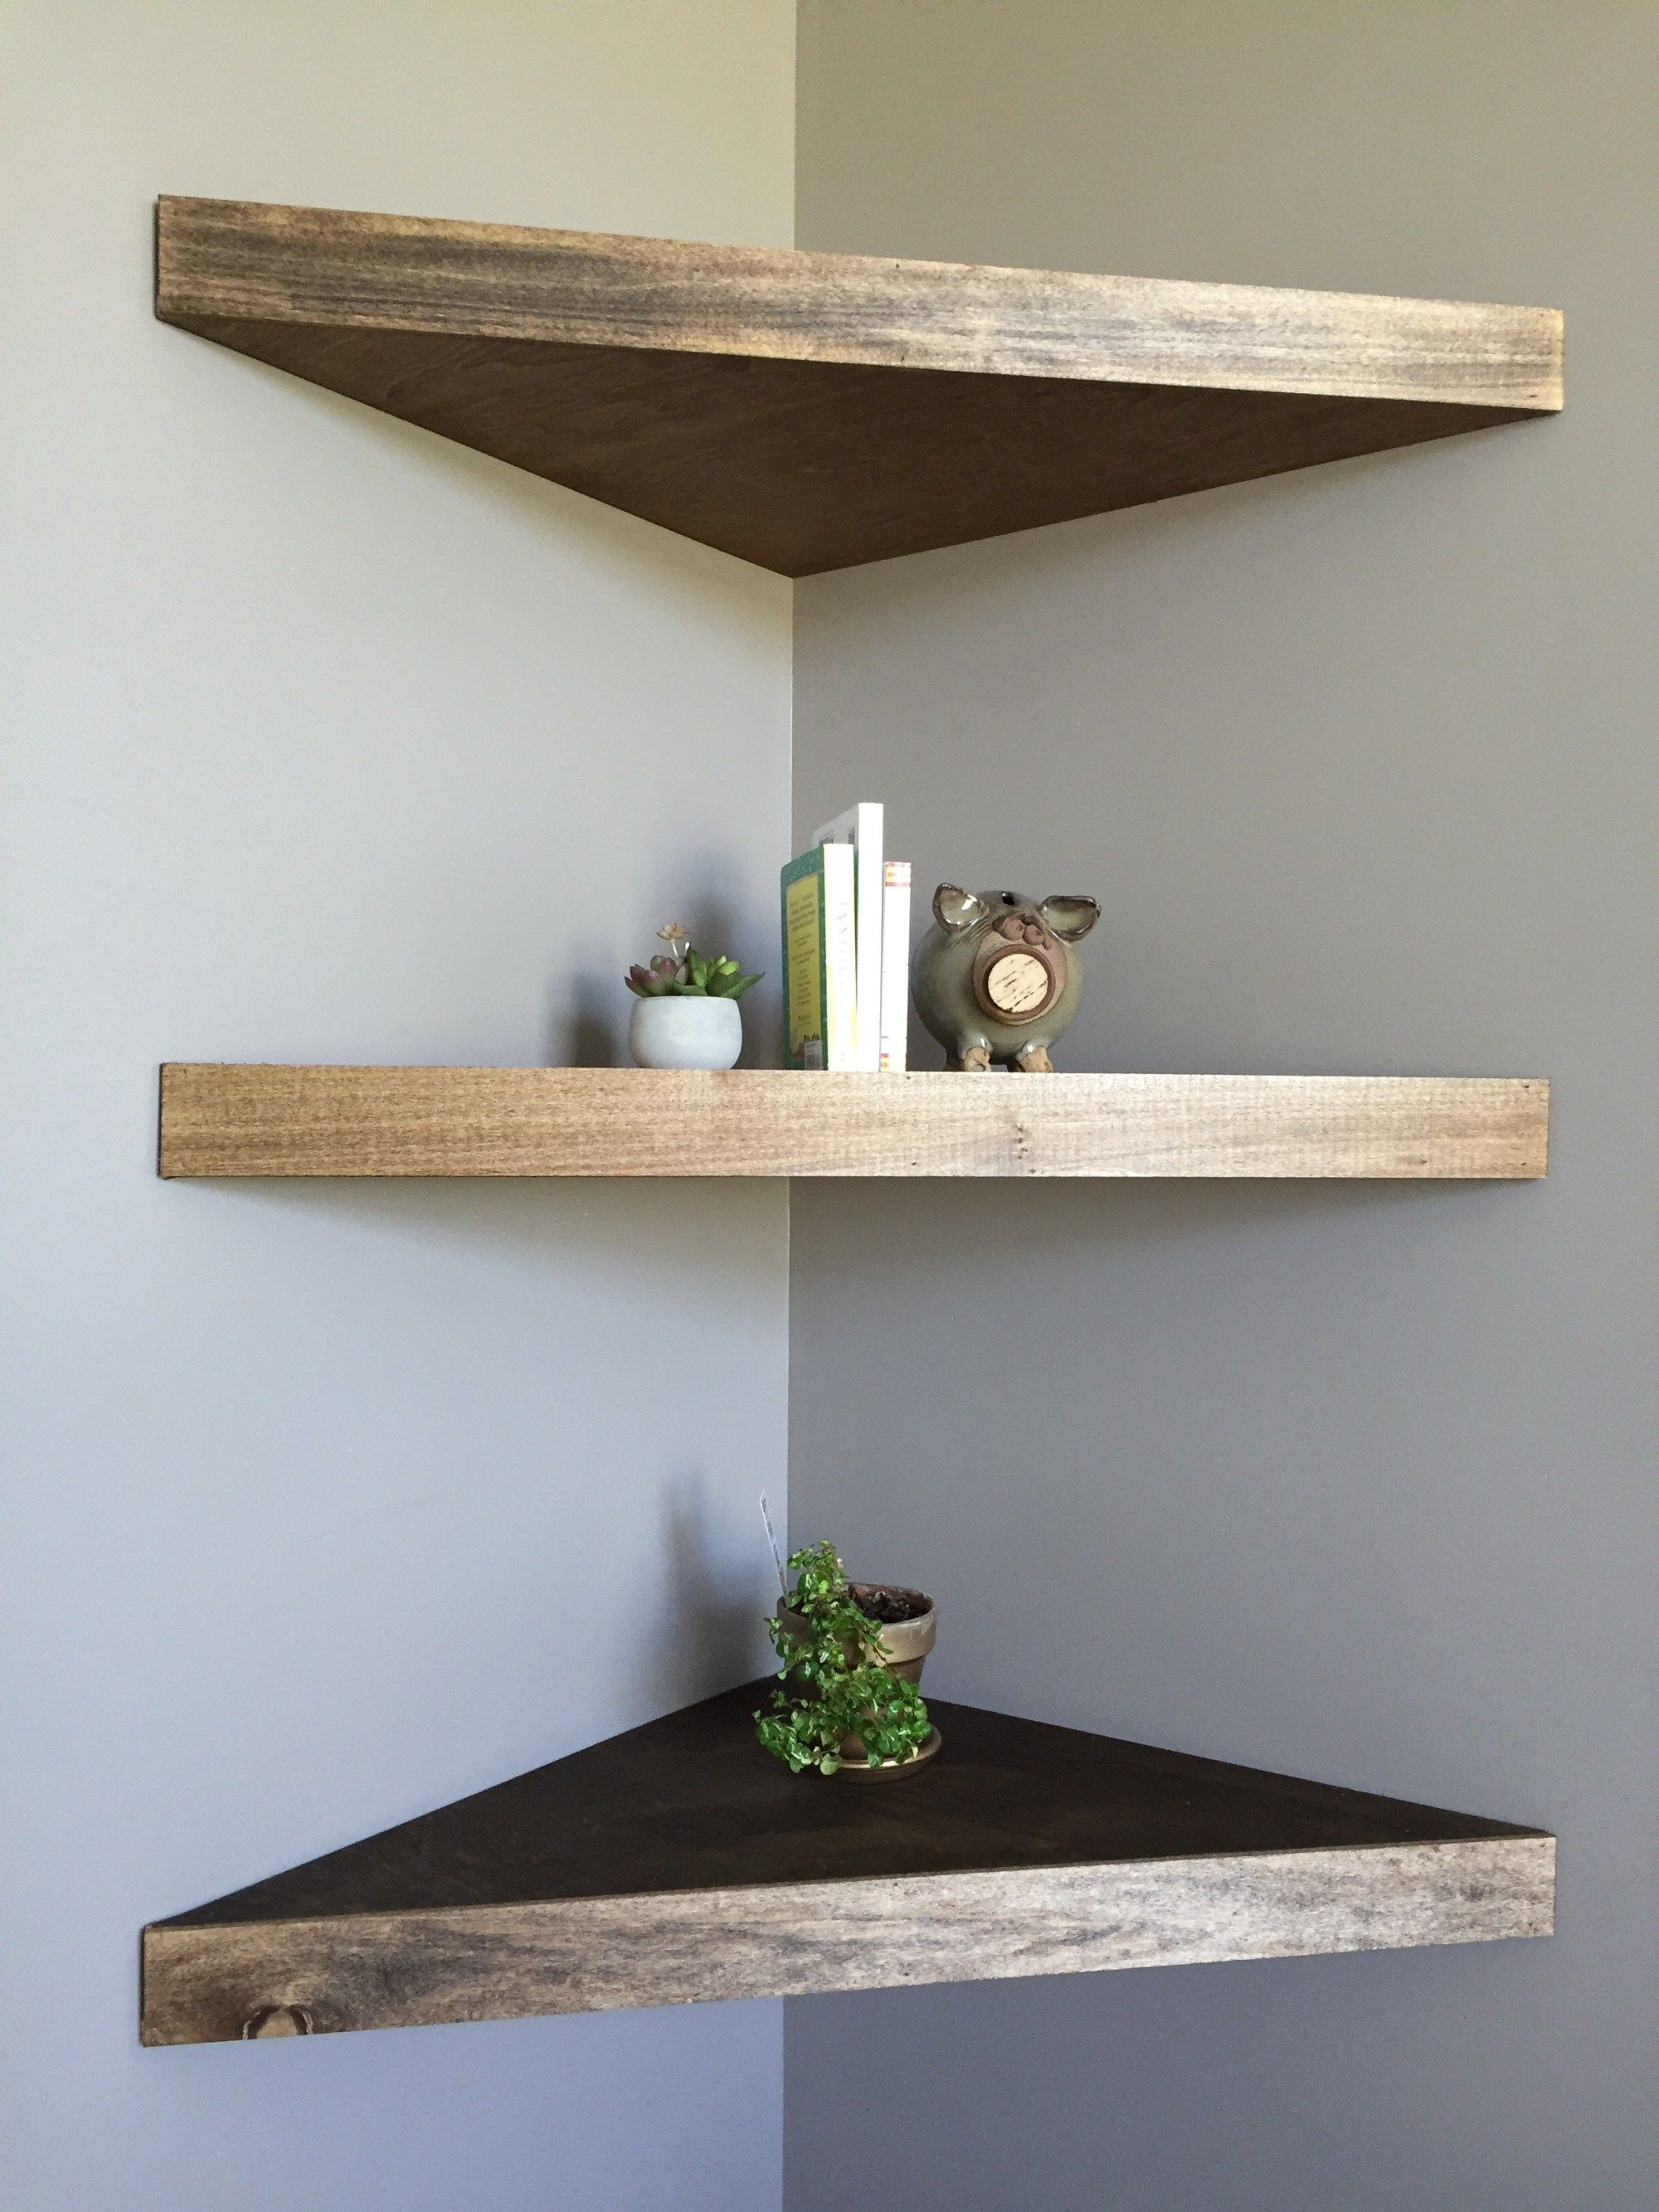 diy floating corner shelves for the home large white shelf how are fireplace mantels attached unfinished shelving boards bathroom cabinet countertop basin wood garage rustic